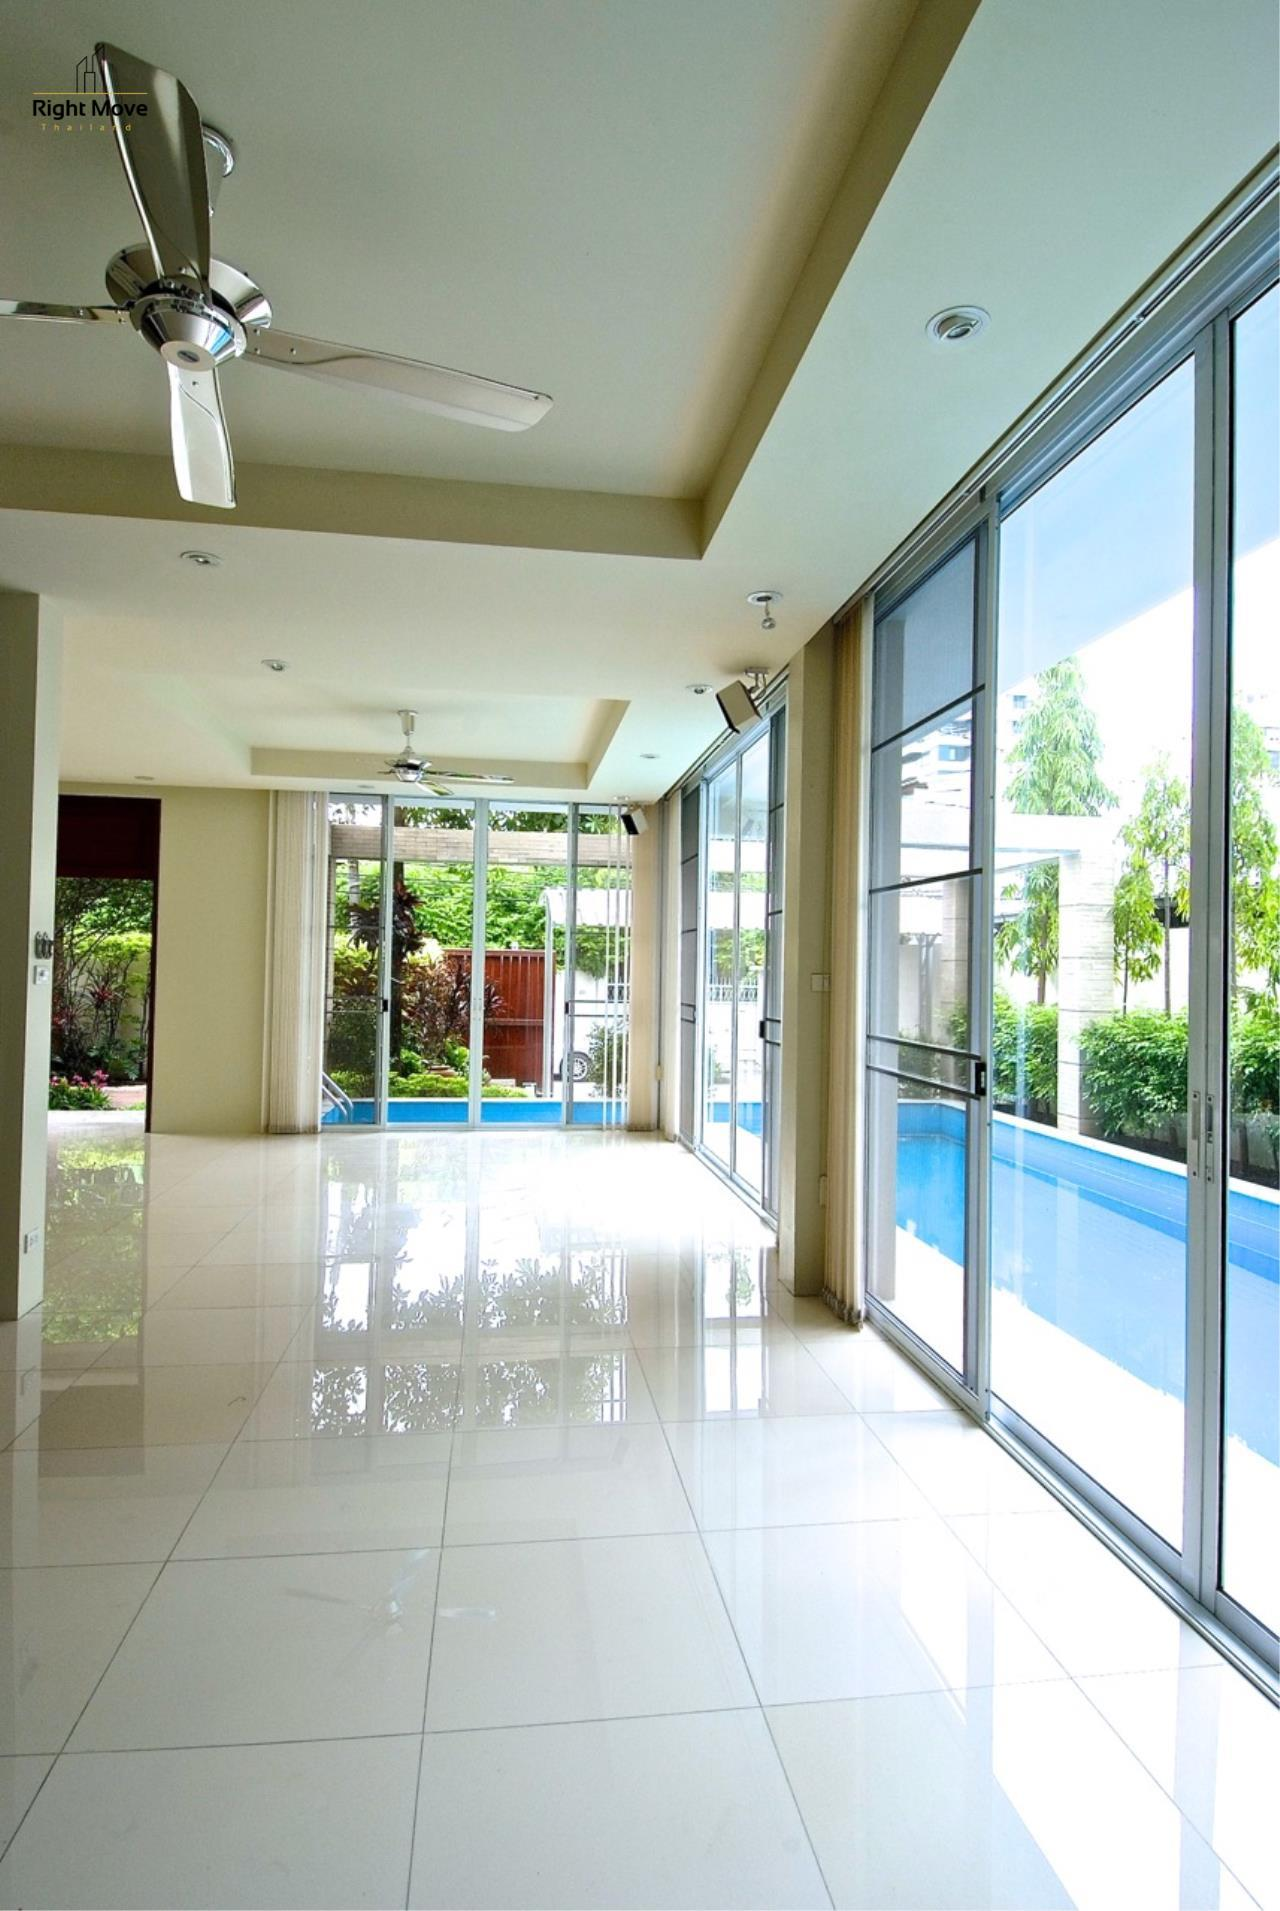 Right Move Thailand Agency's HR968 Single House For Rent 170,000 THB 4 Bedrooms 500 Sqm 3